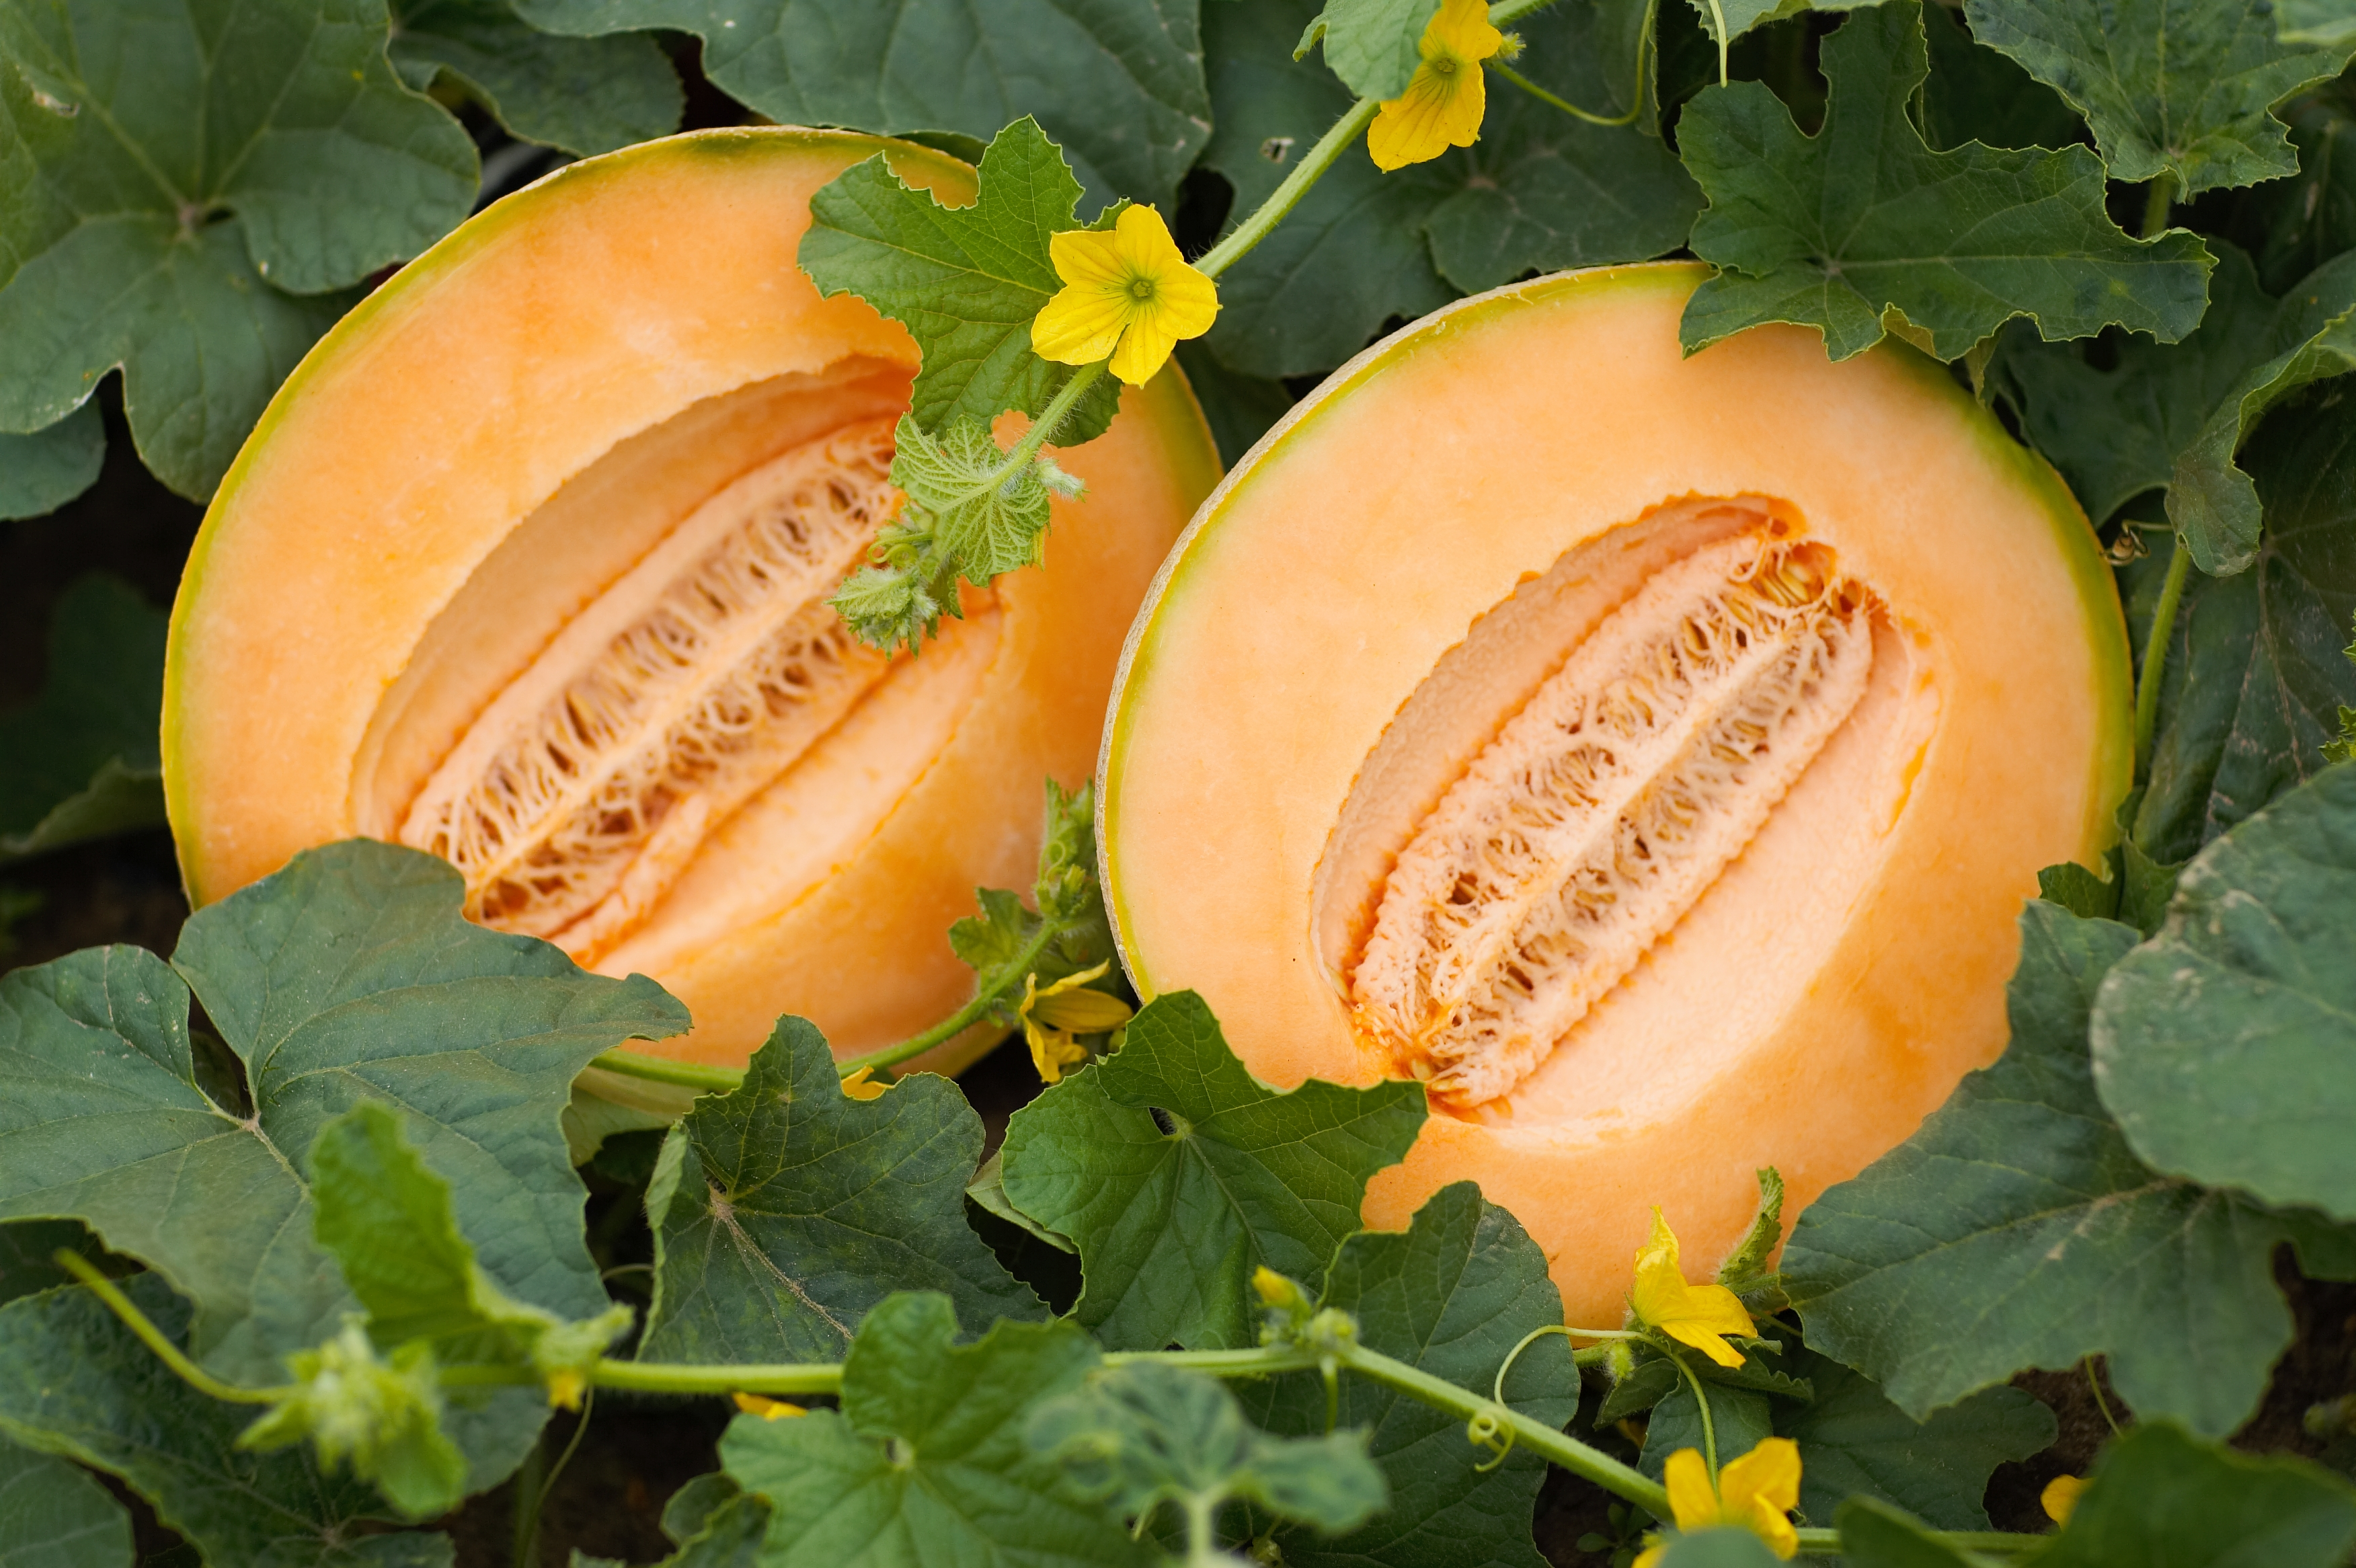 Indiana melons